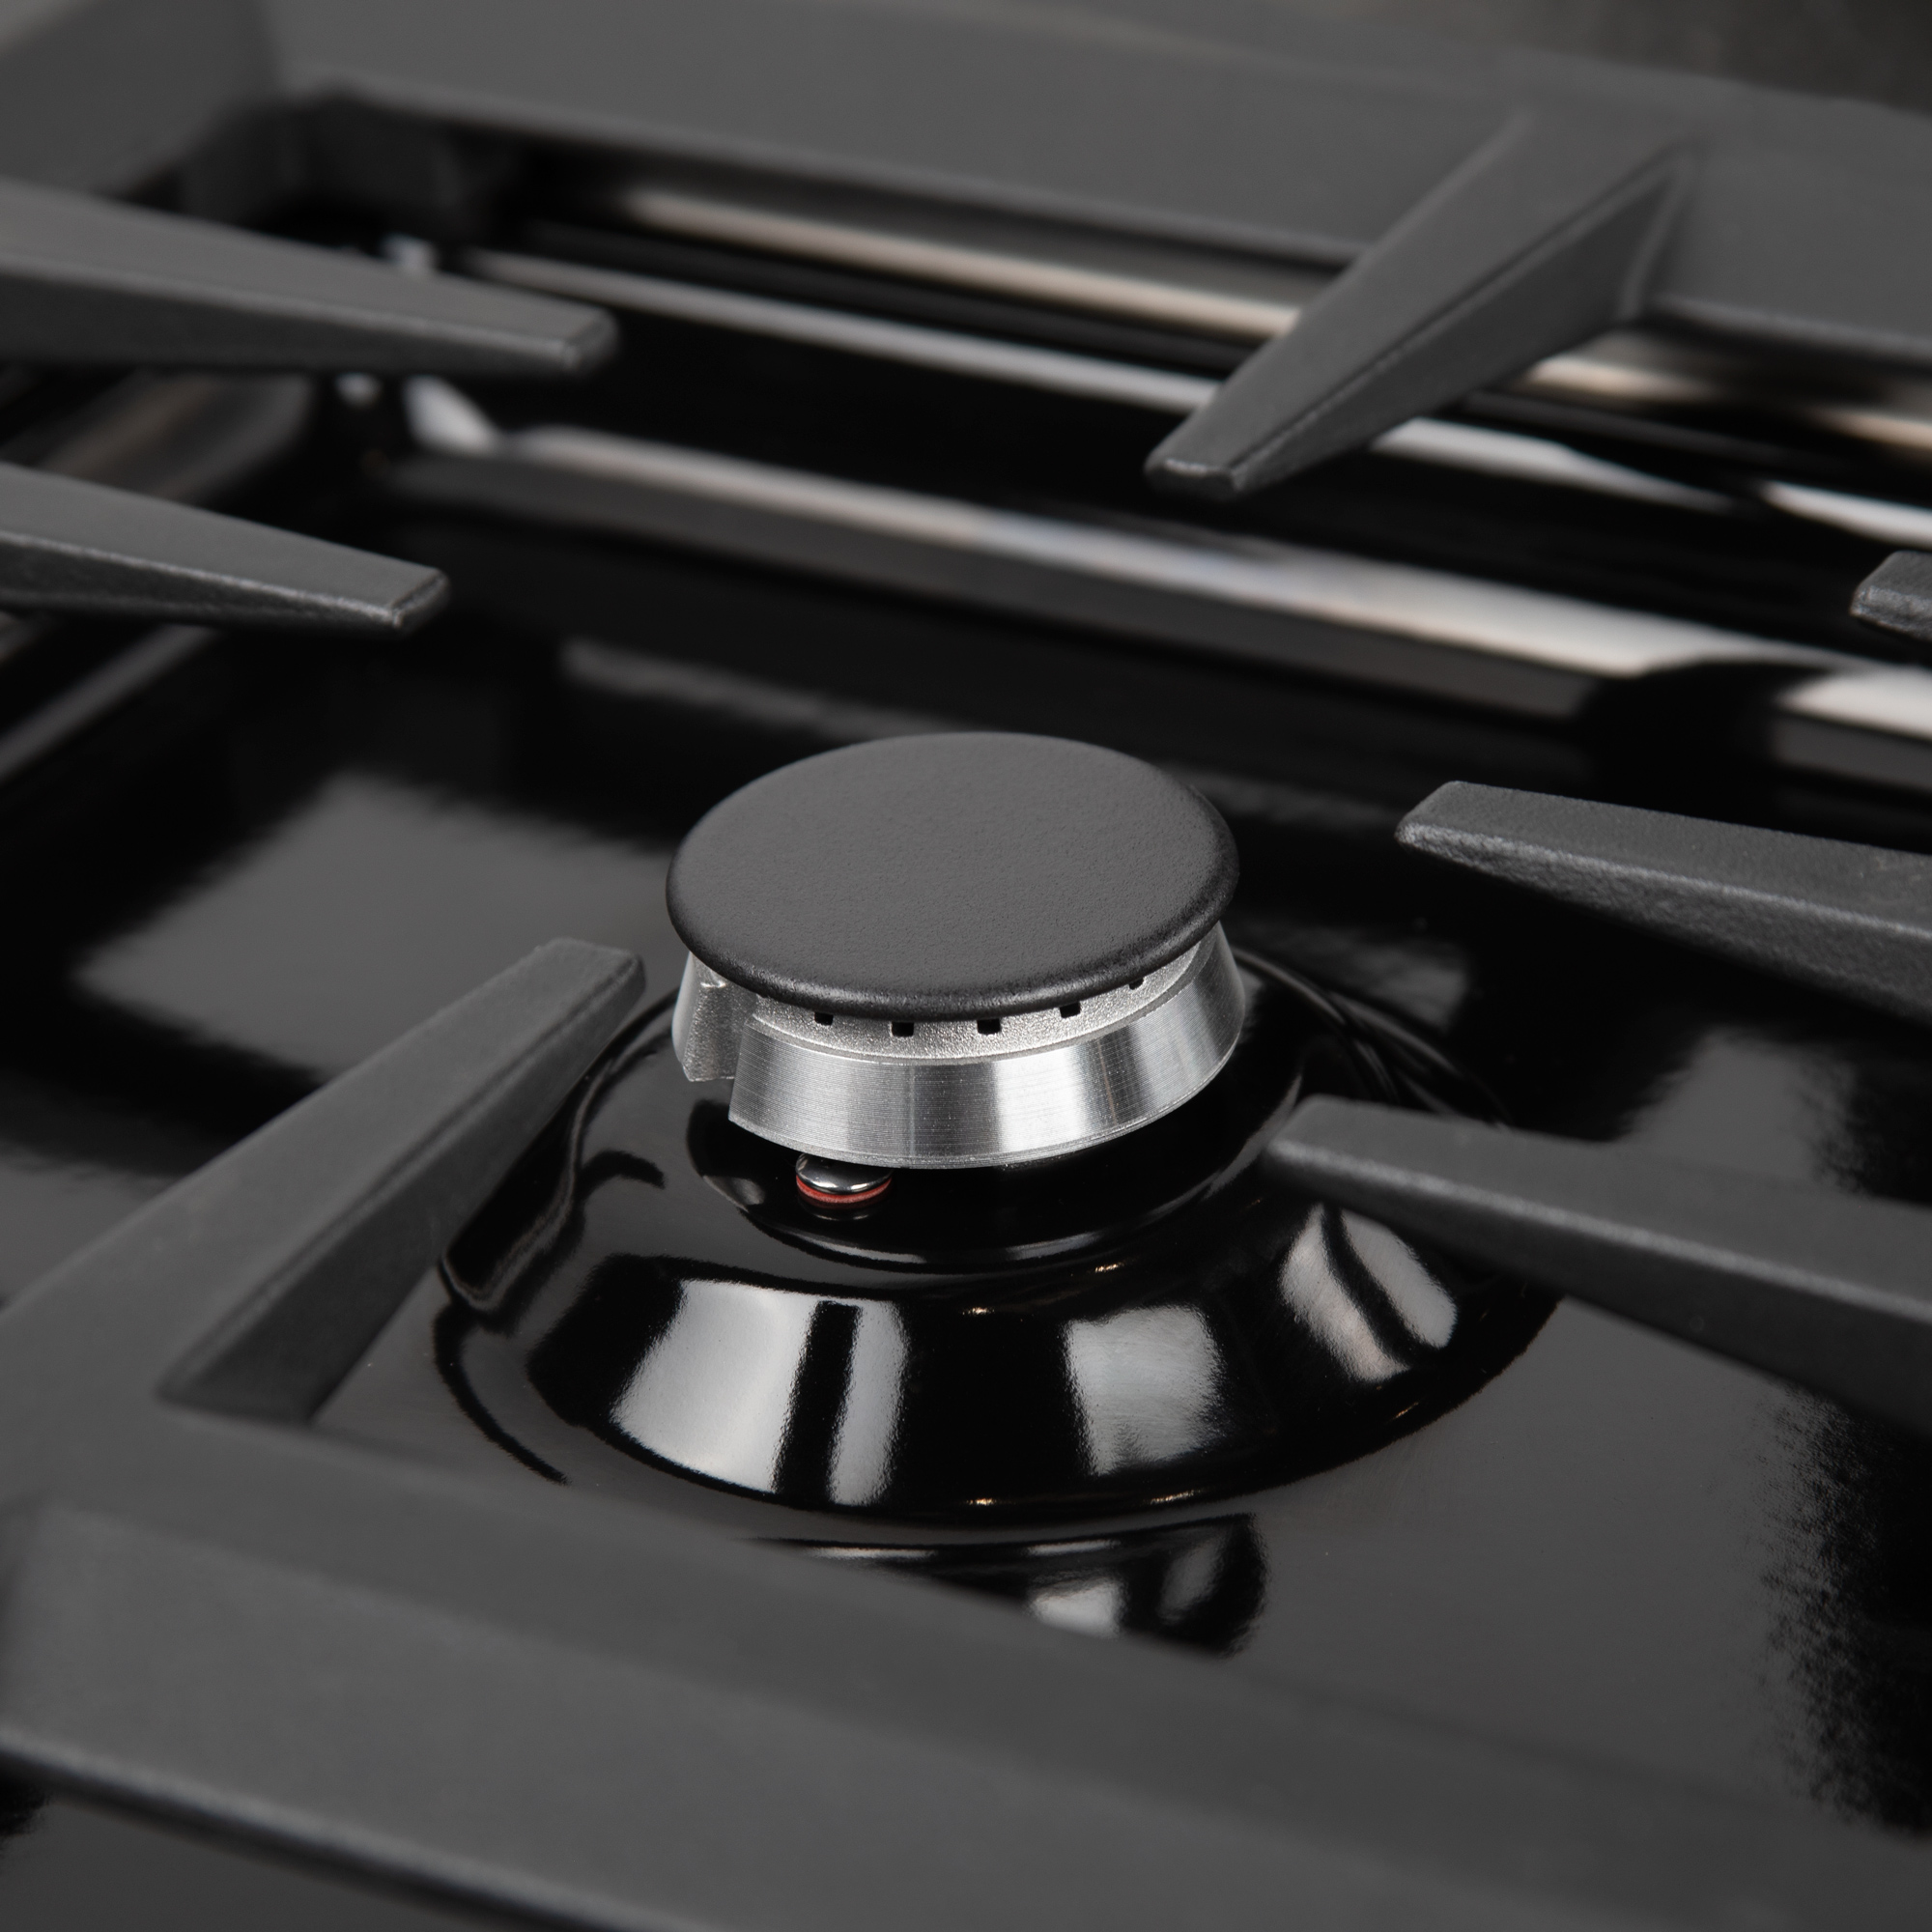 zline-professional-gas-dropin-cooktop-RC36-PBT-closeup.jpg